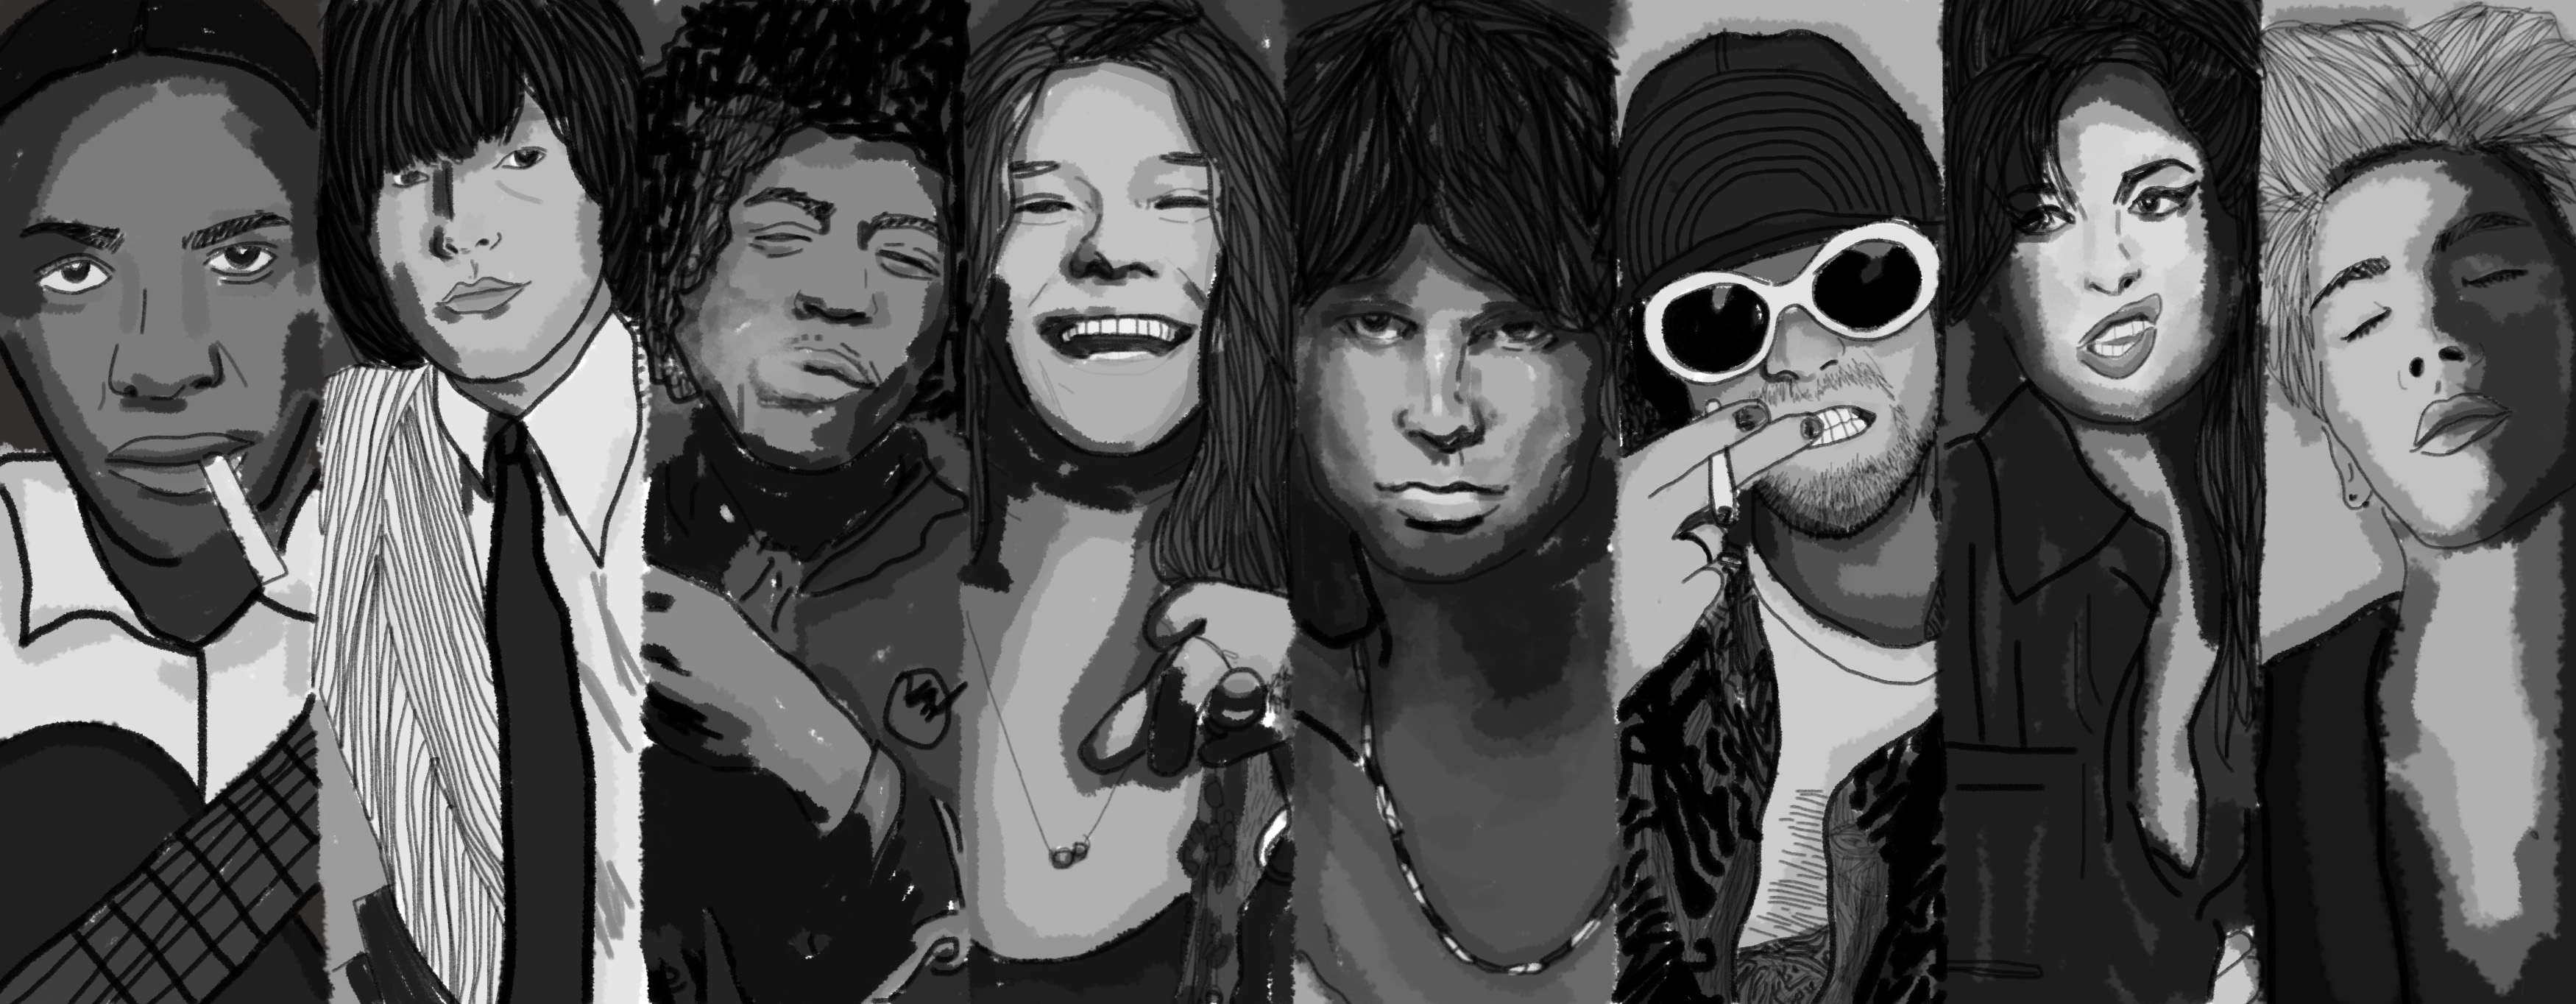 THE 27 CLUB : A Number of Mystery or Just a Coincidence